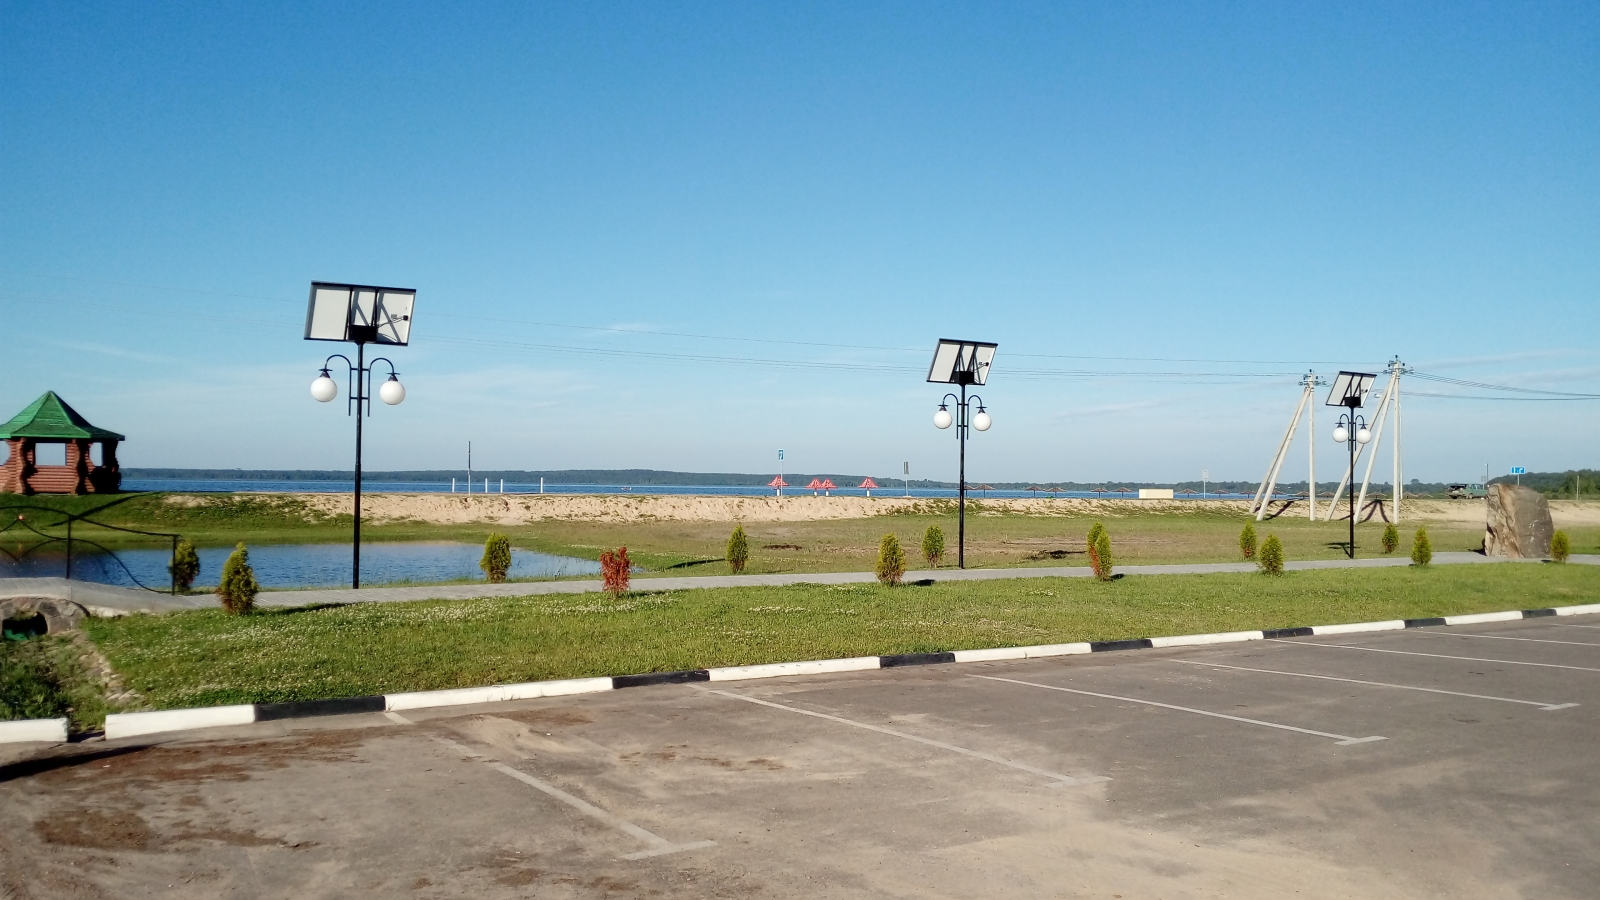 Solar-powered street lights help Braslaŭ become first climate neutral municipality in Belarus